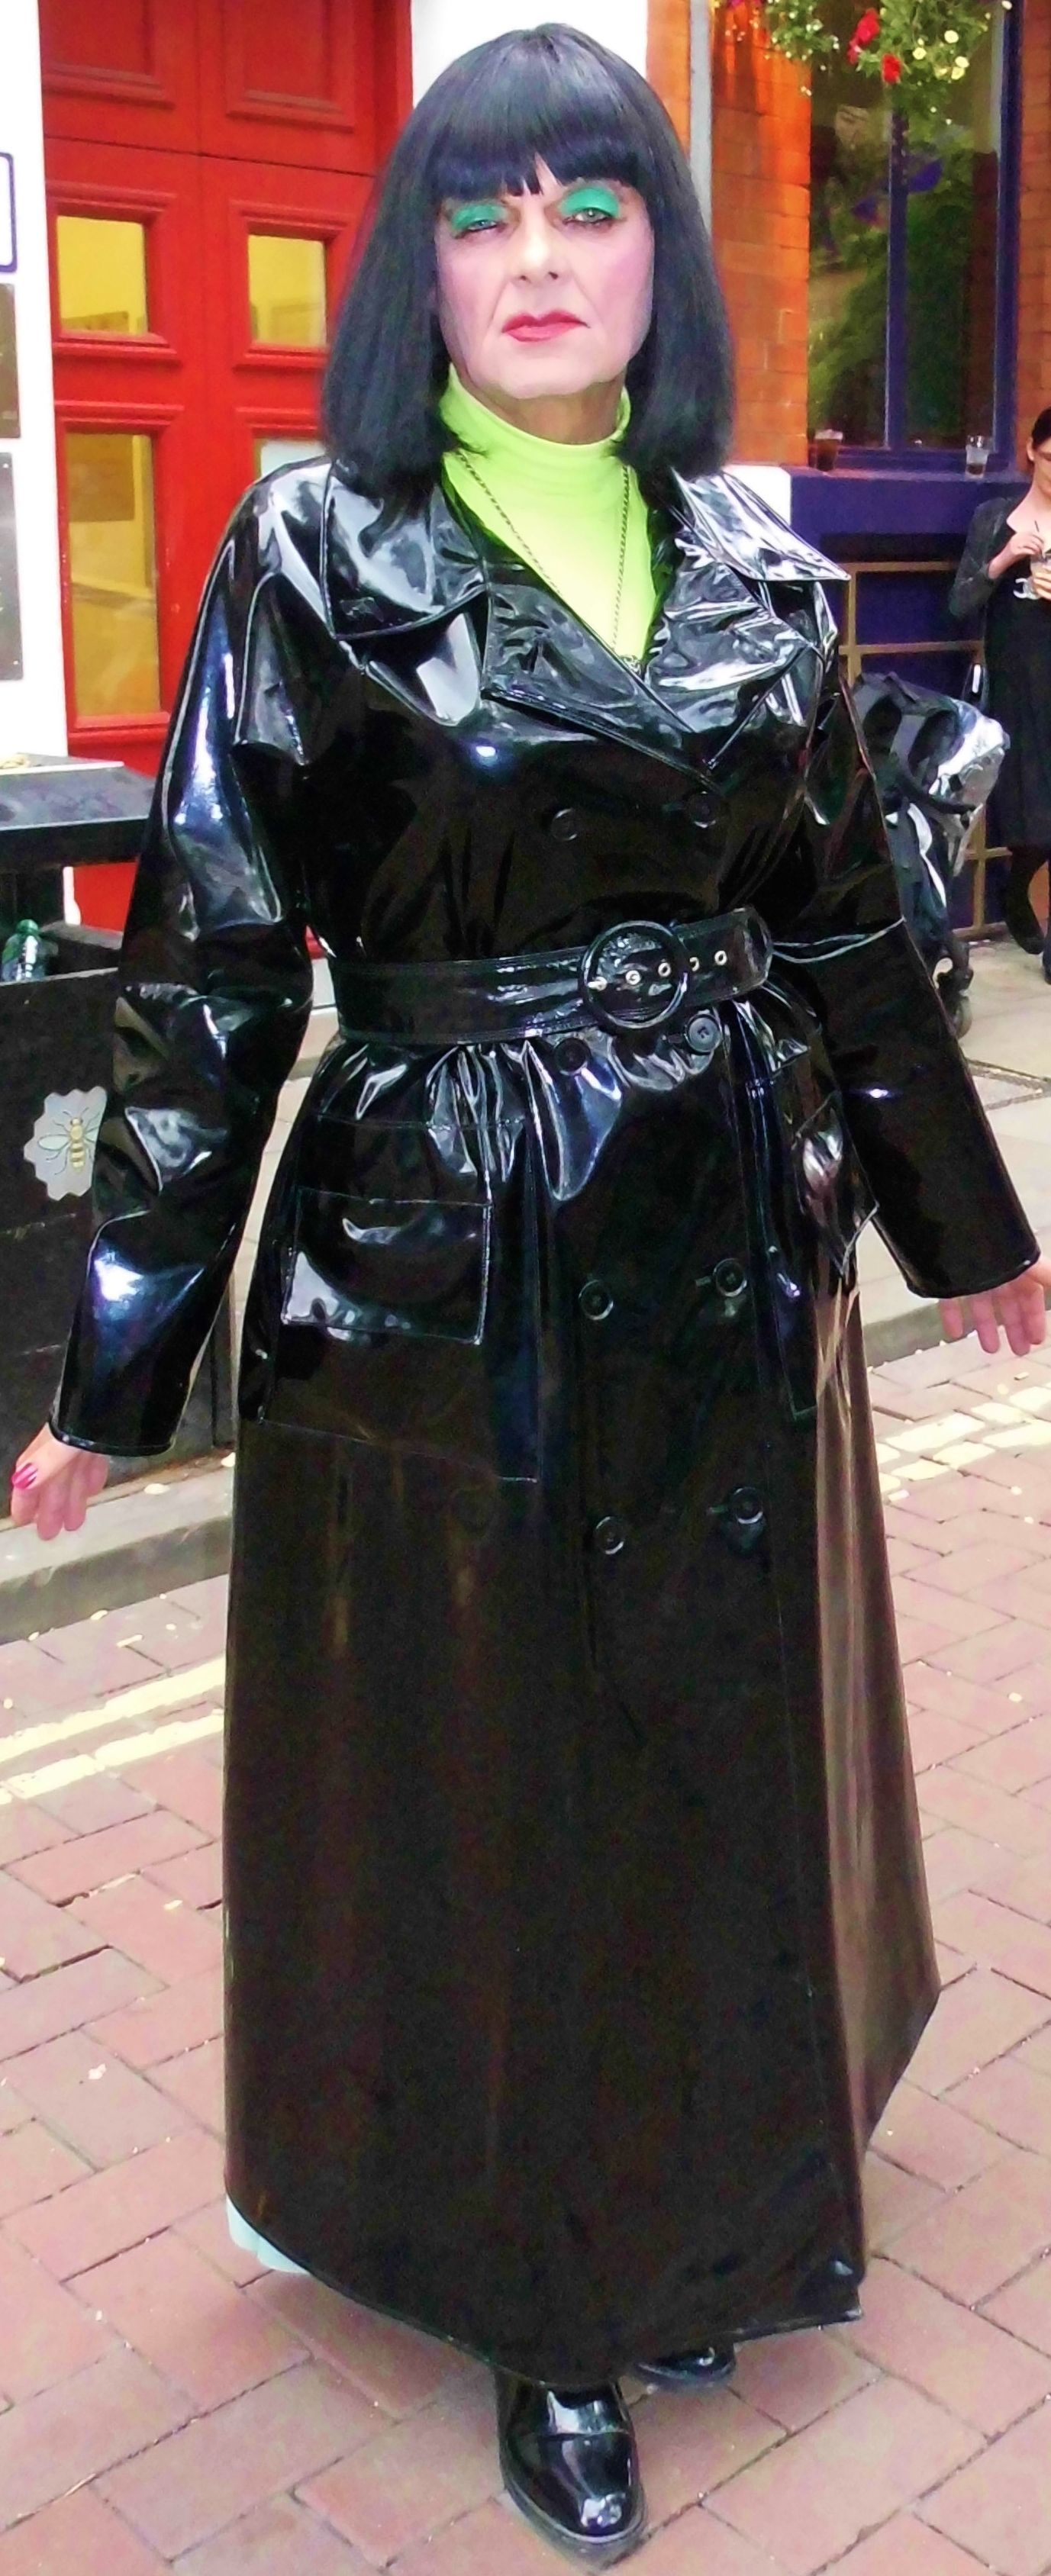 Too much cleavage wedding dress  Pin by DAWN RAIN on rubber and rippling rubberised rainwear  Pinterest